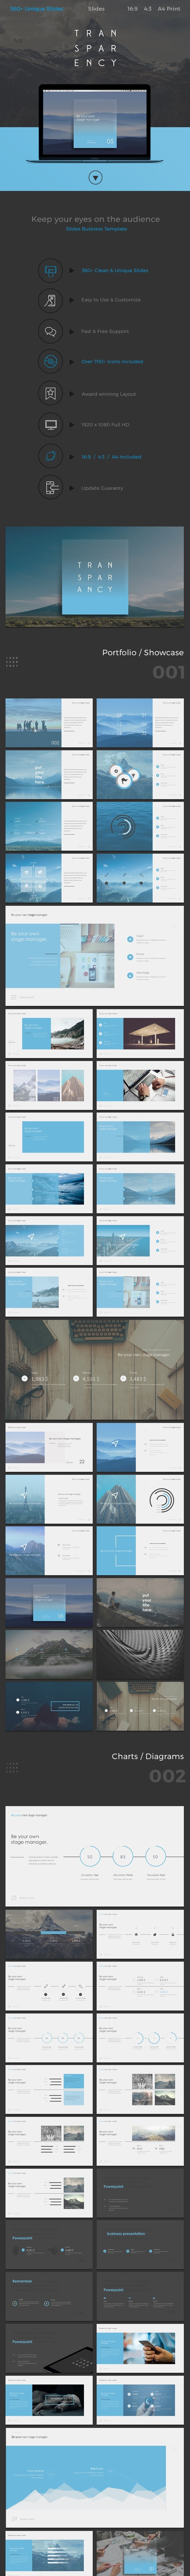 Transparency Google Slides - Google Slides Presentation Templates